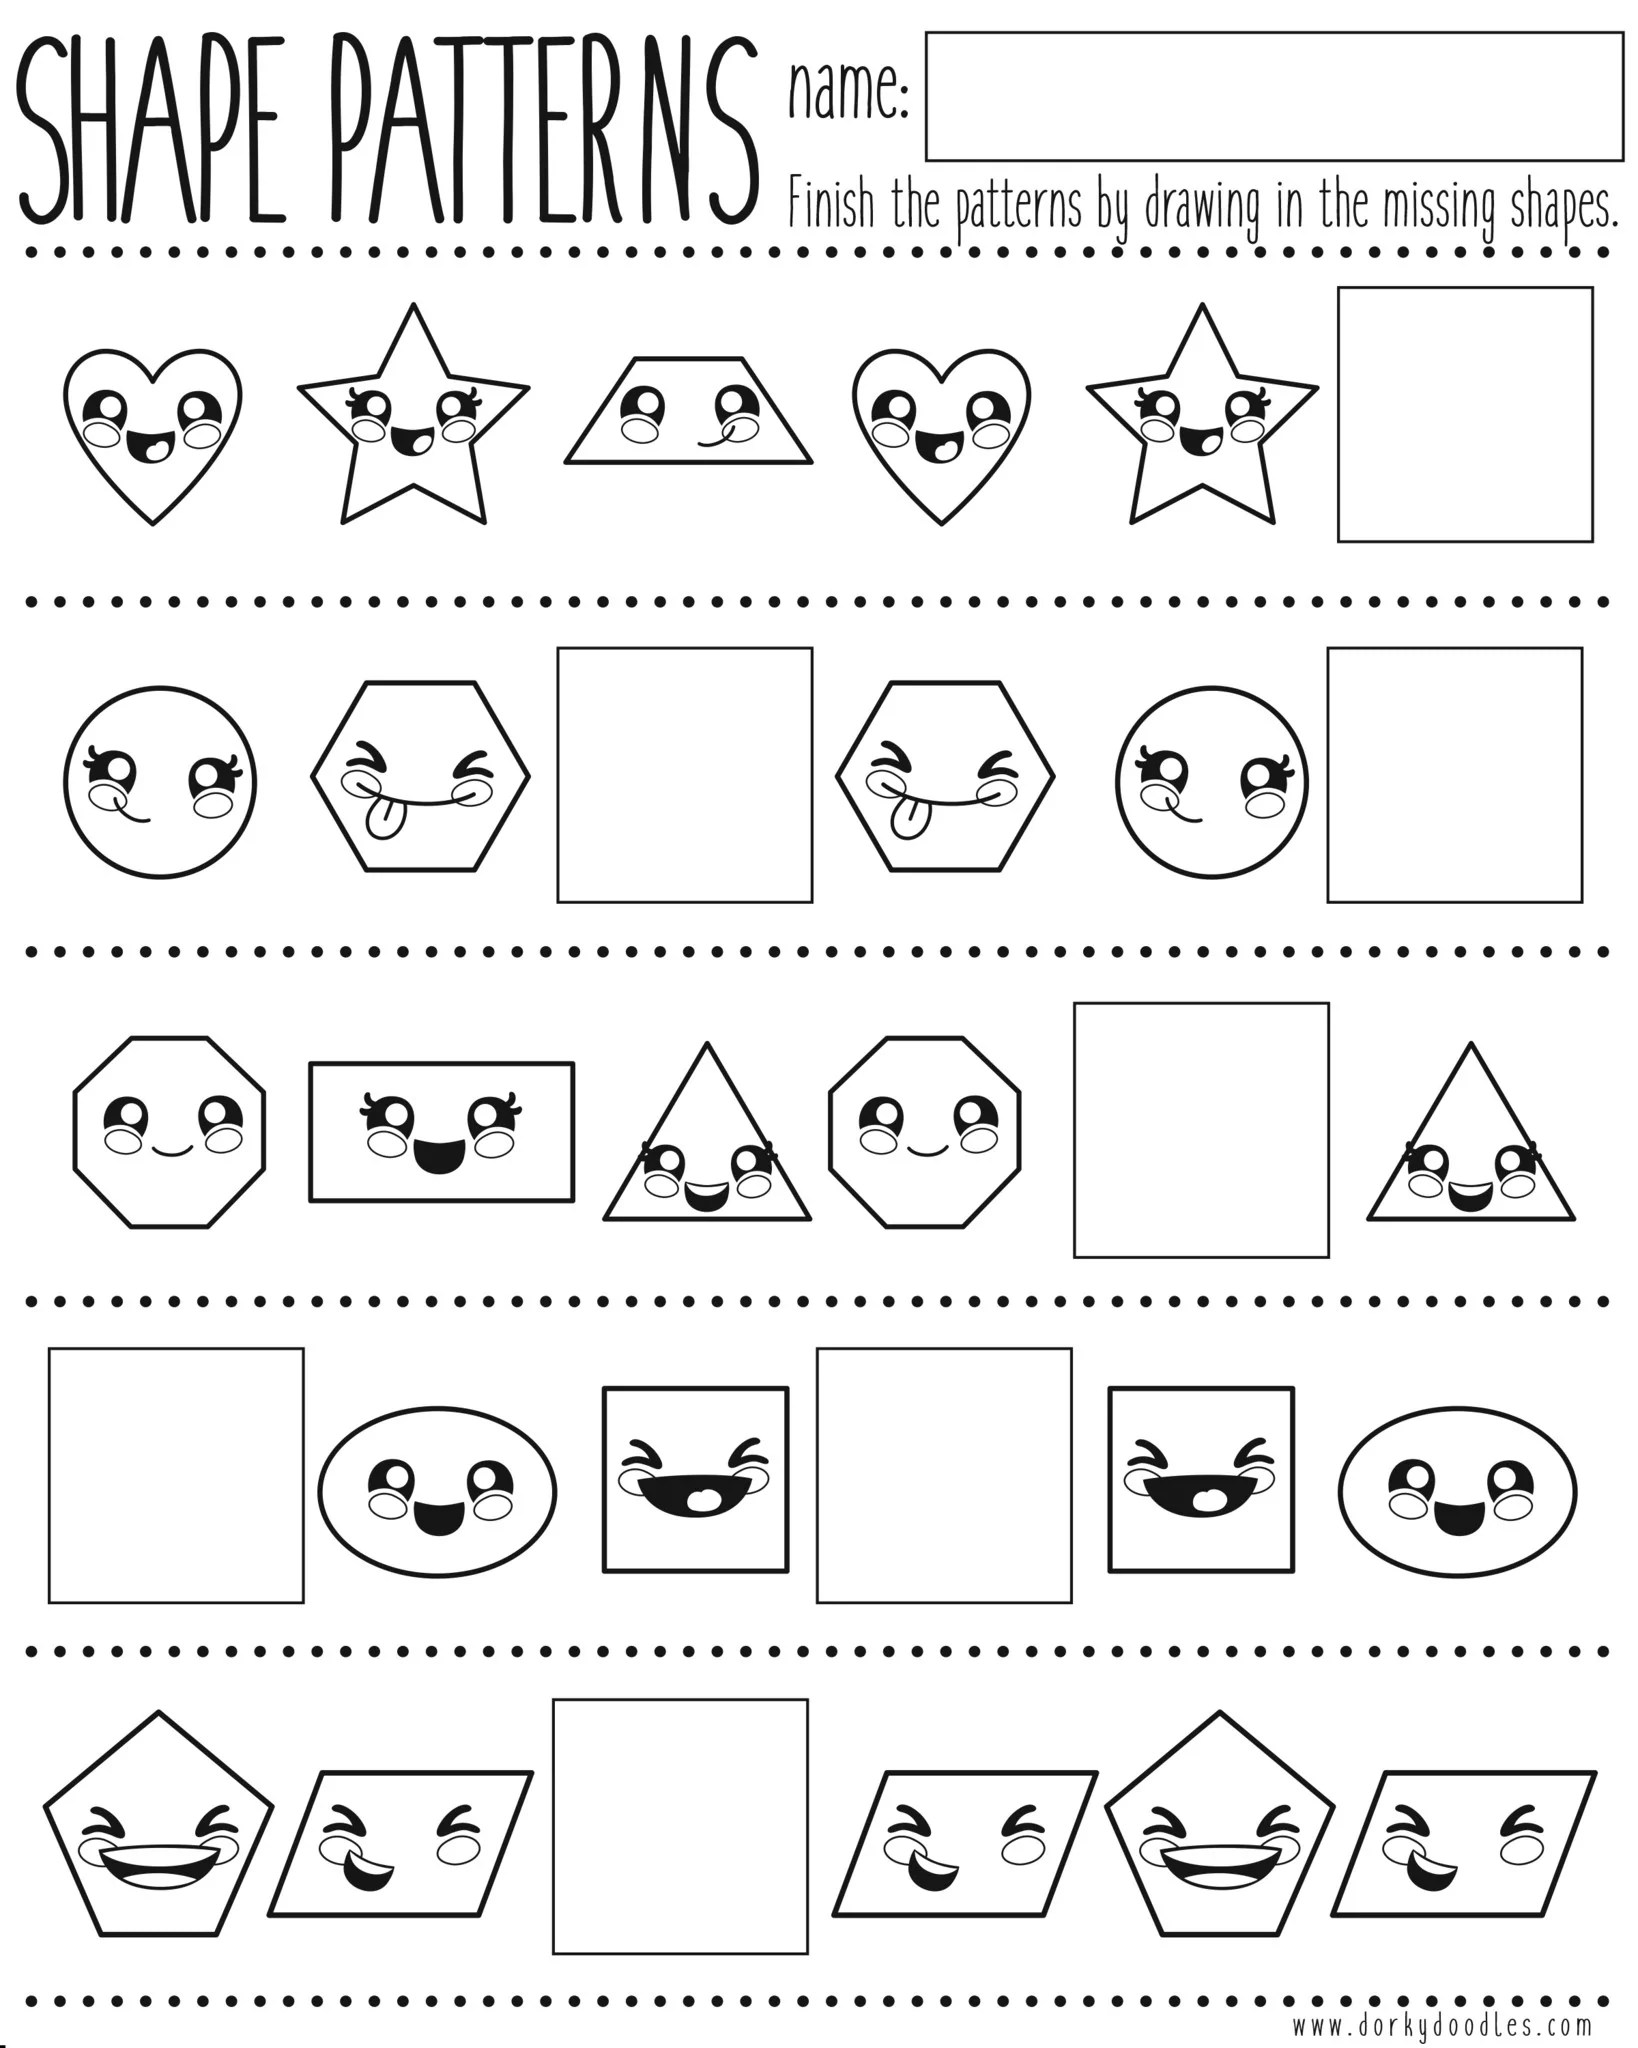 hight resolution of Shapes and Pattern Practice Printable Worksheet – Dorky Doodles